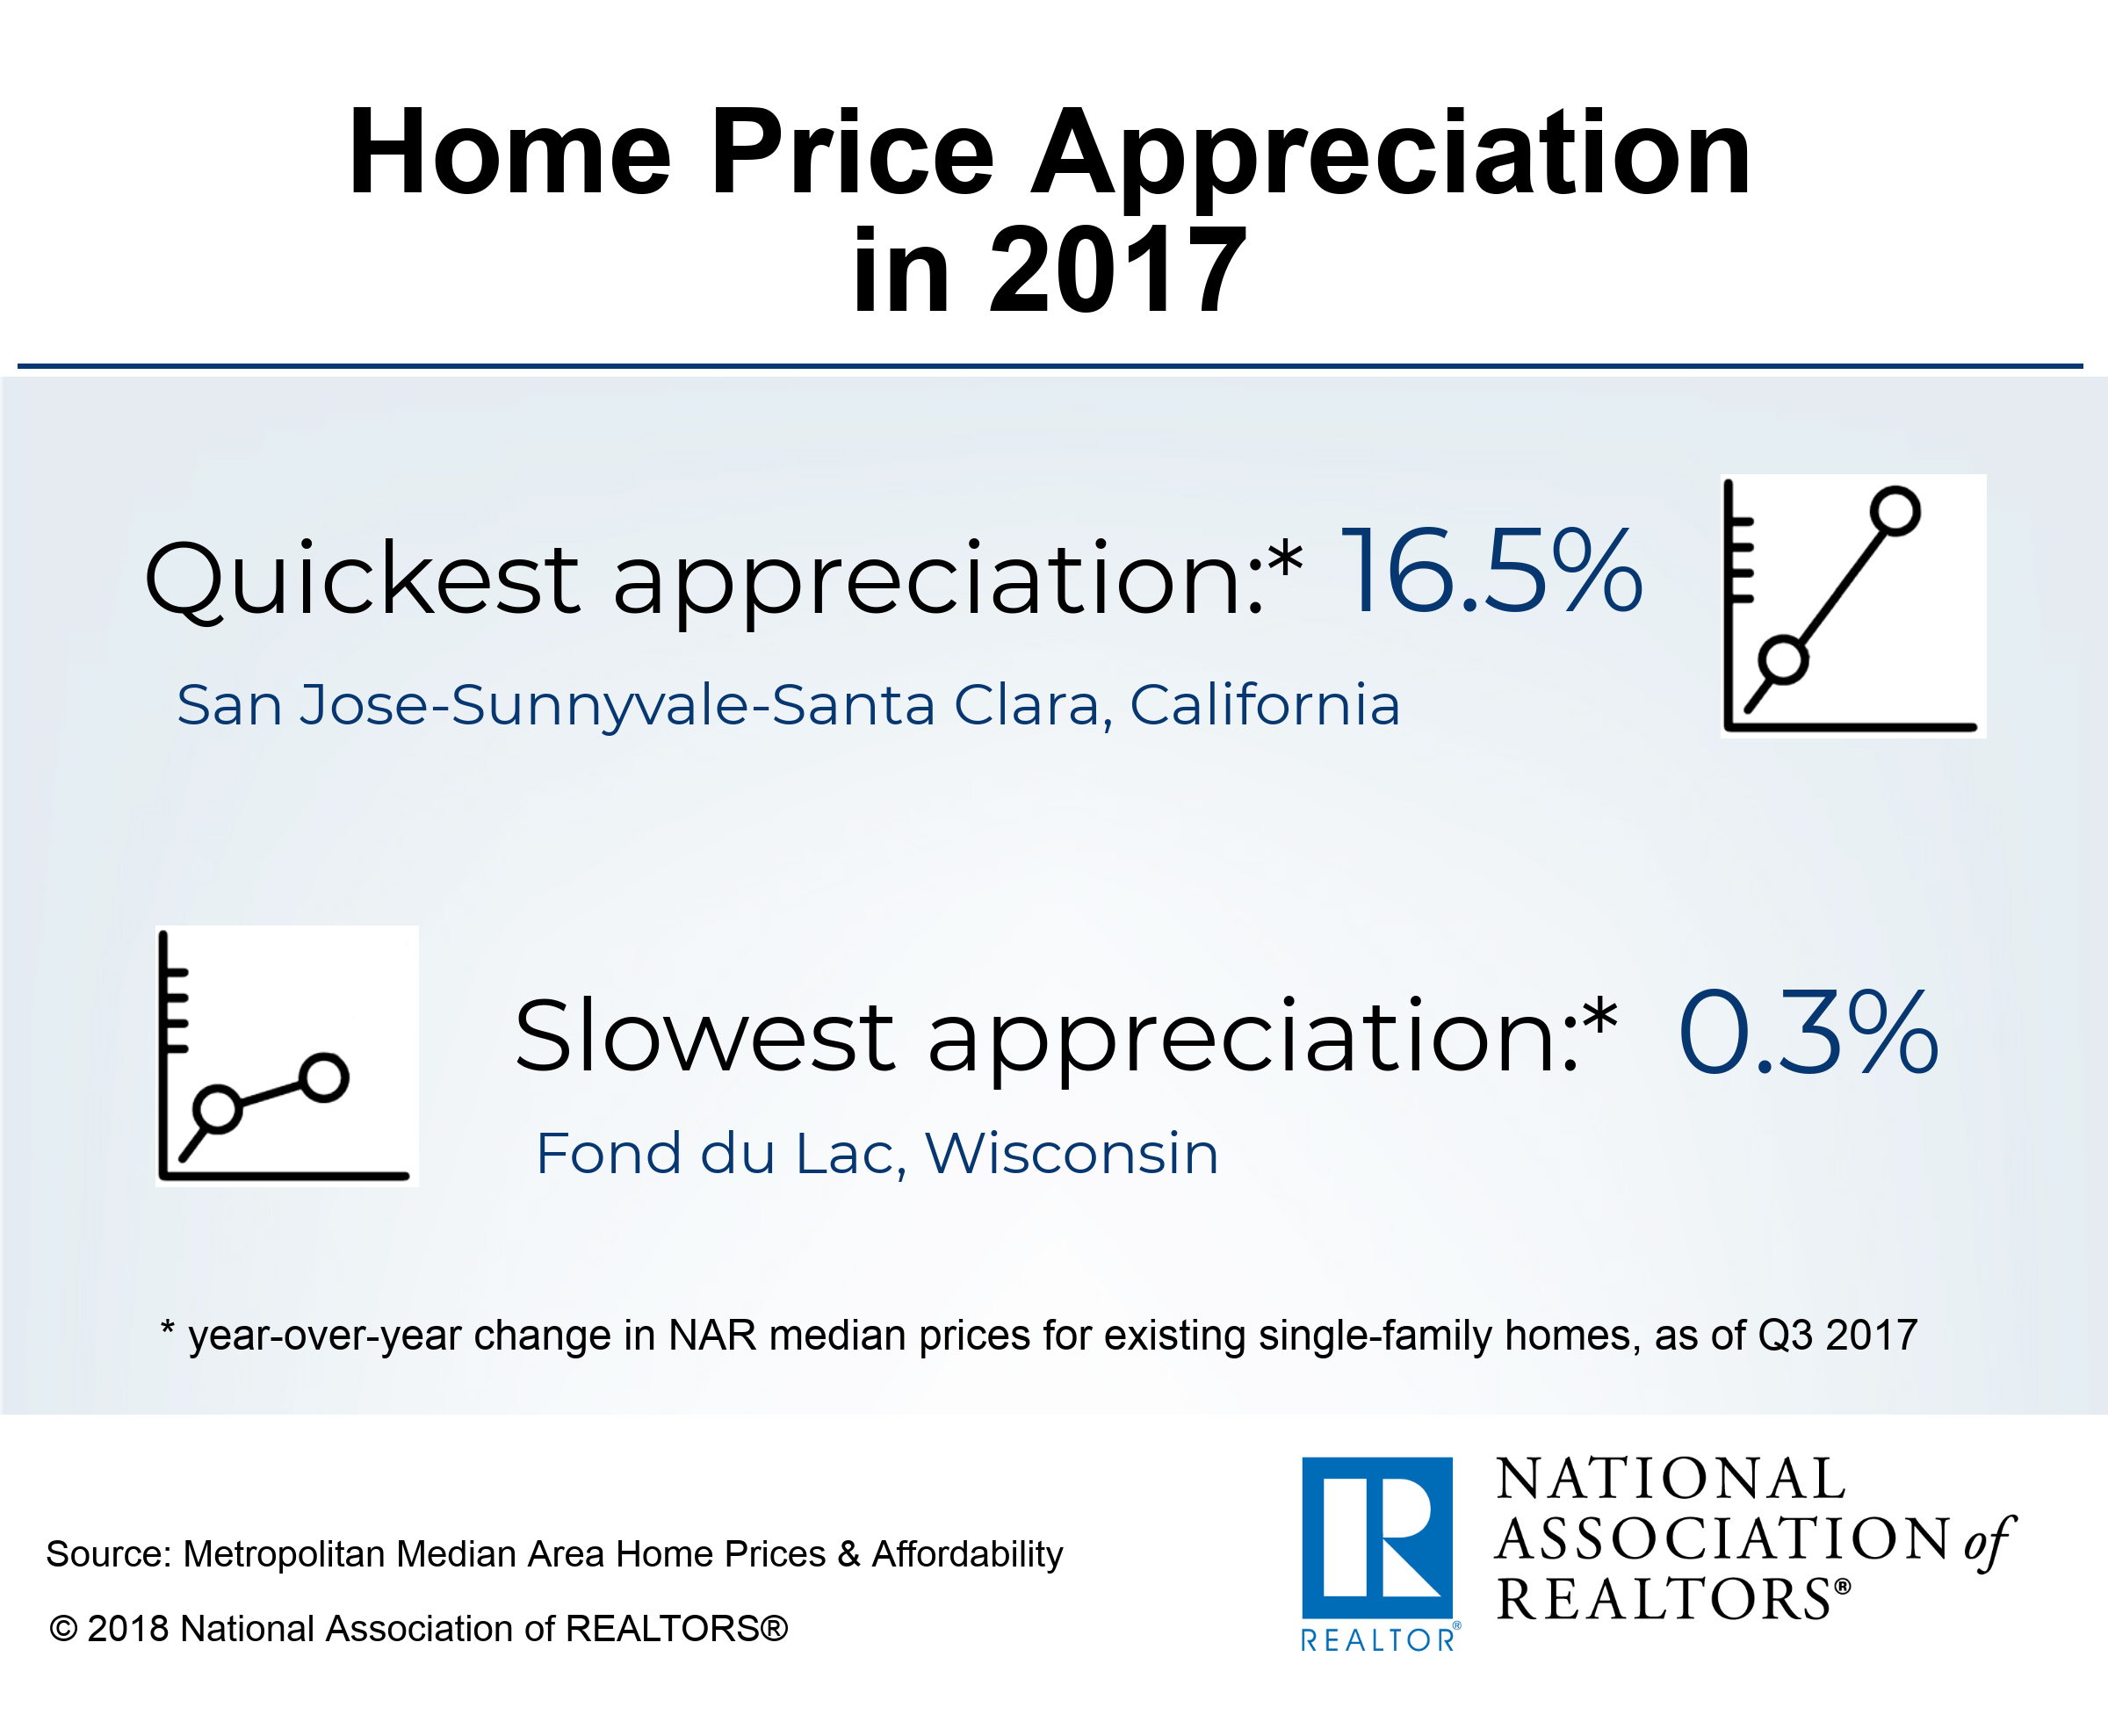 infographic home price appreciation in 2017 www